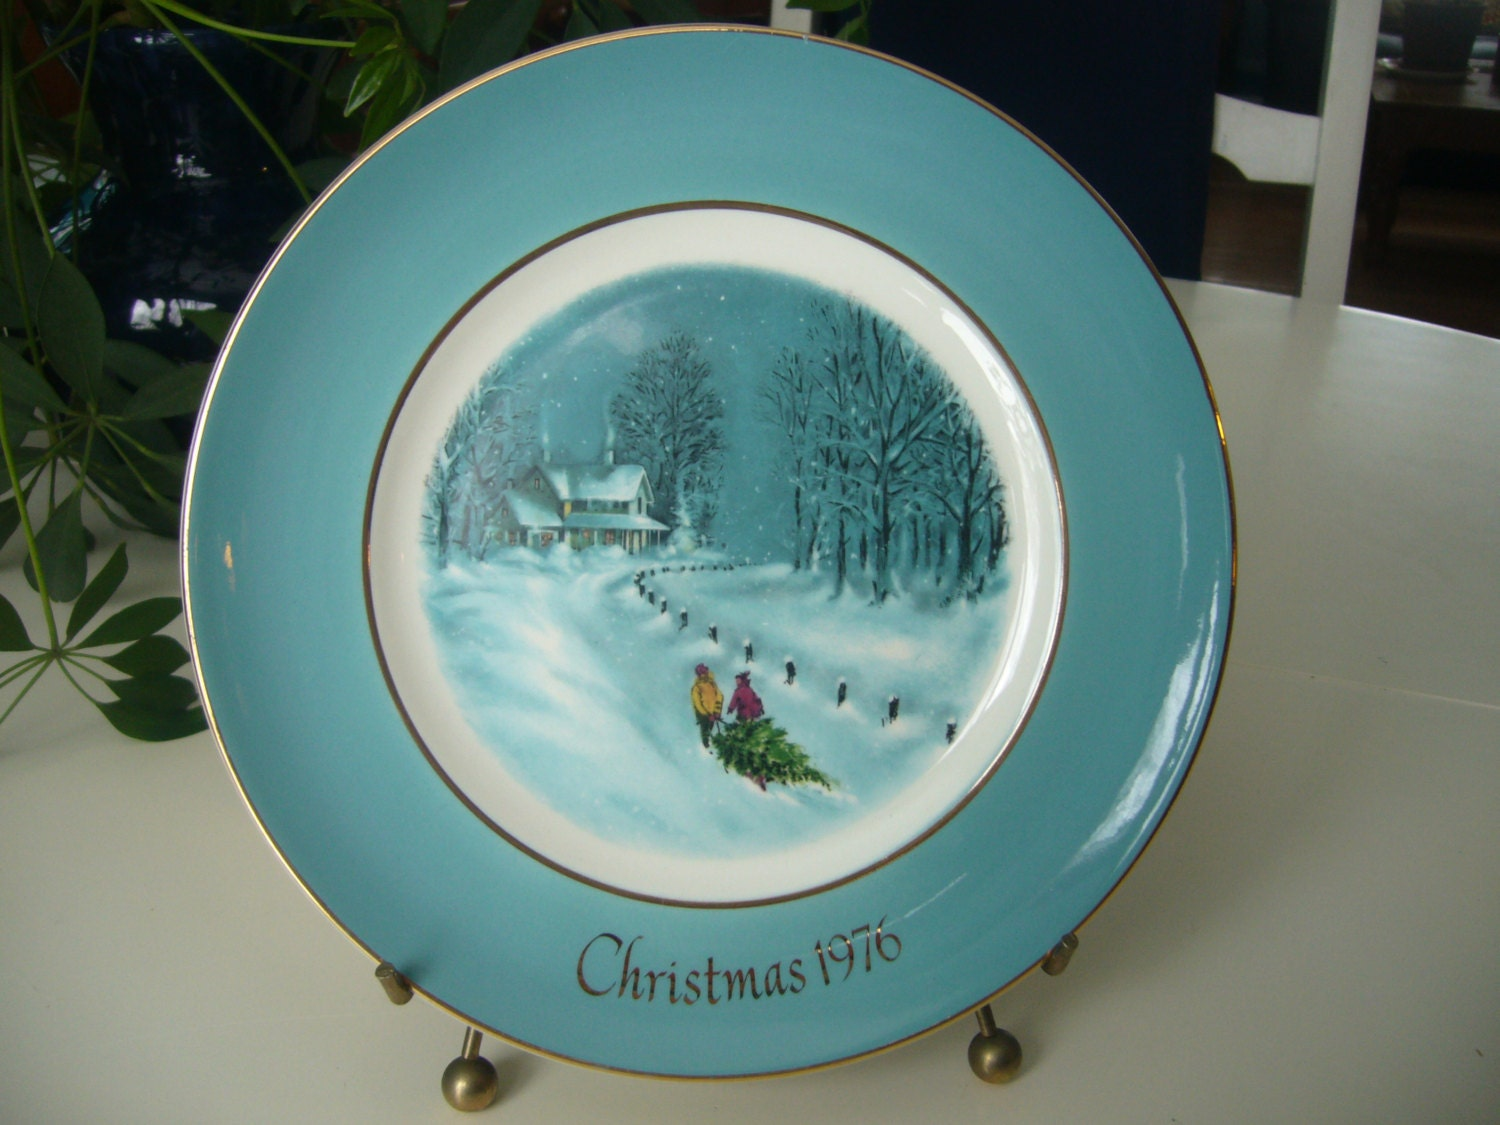 Vintage 1976 Avon Christmas Plate Bringing Home The Tree